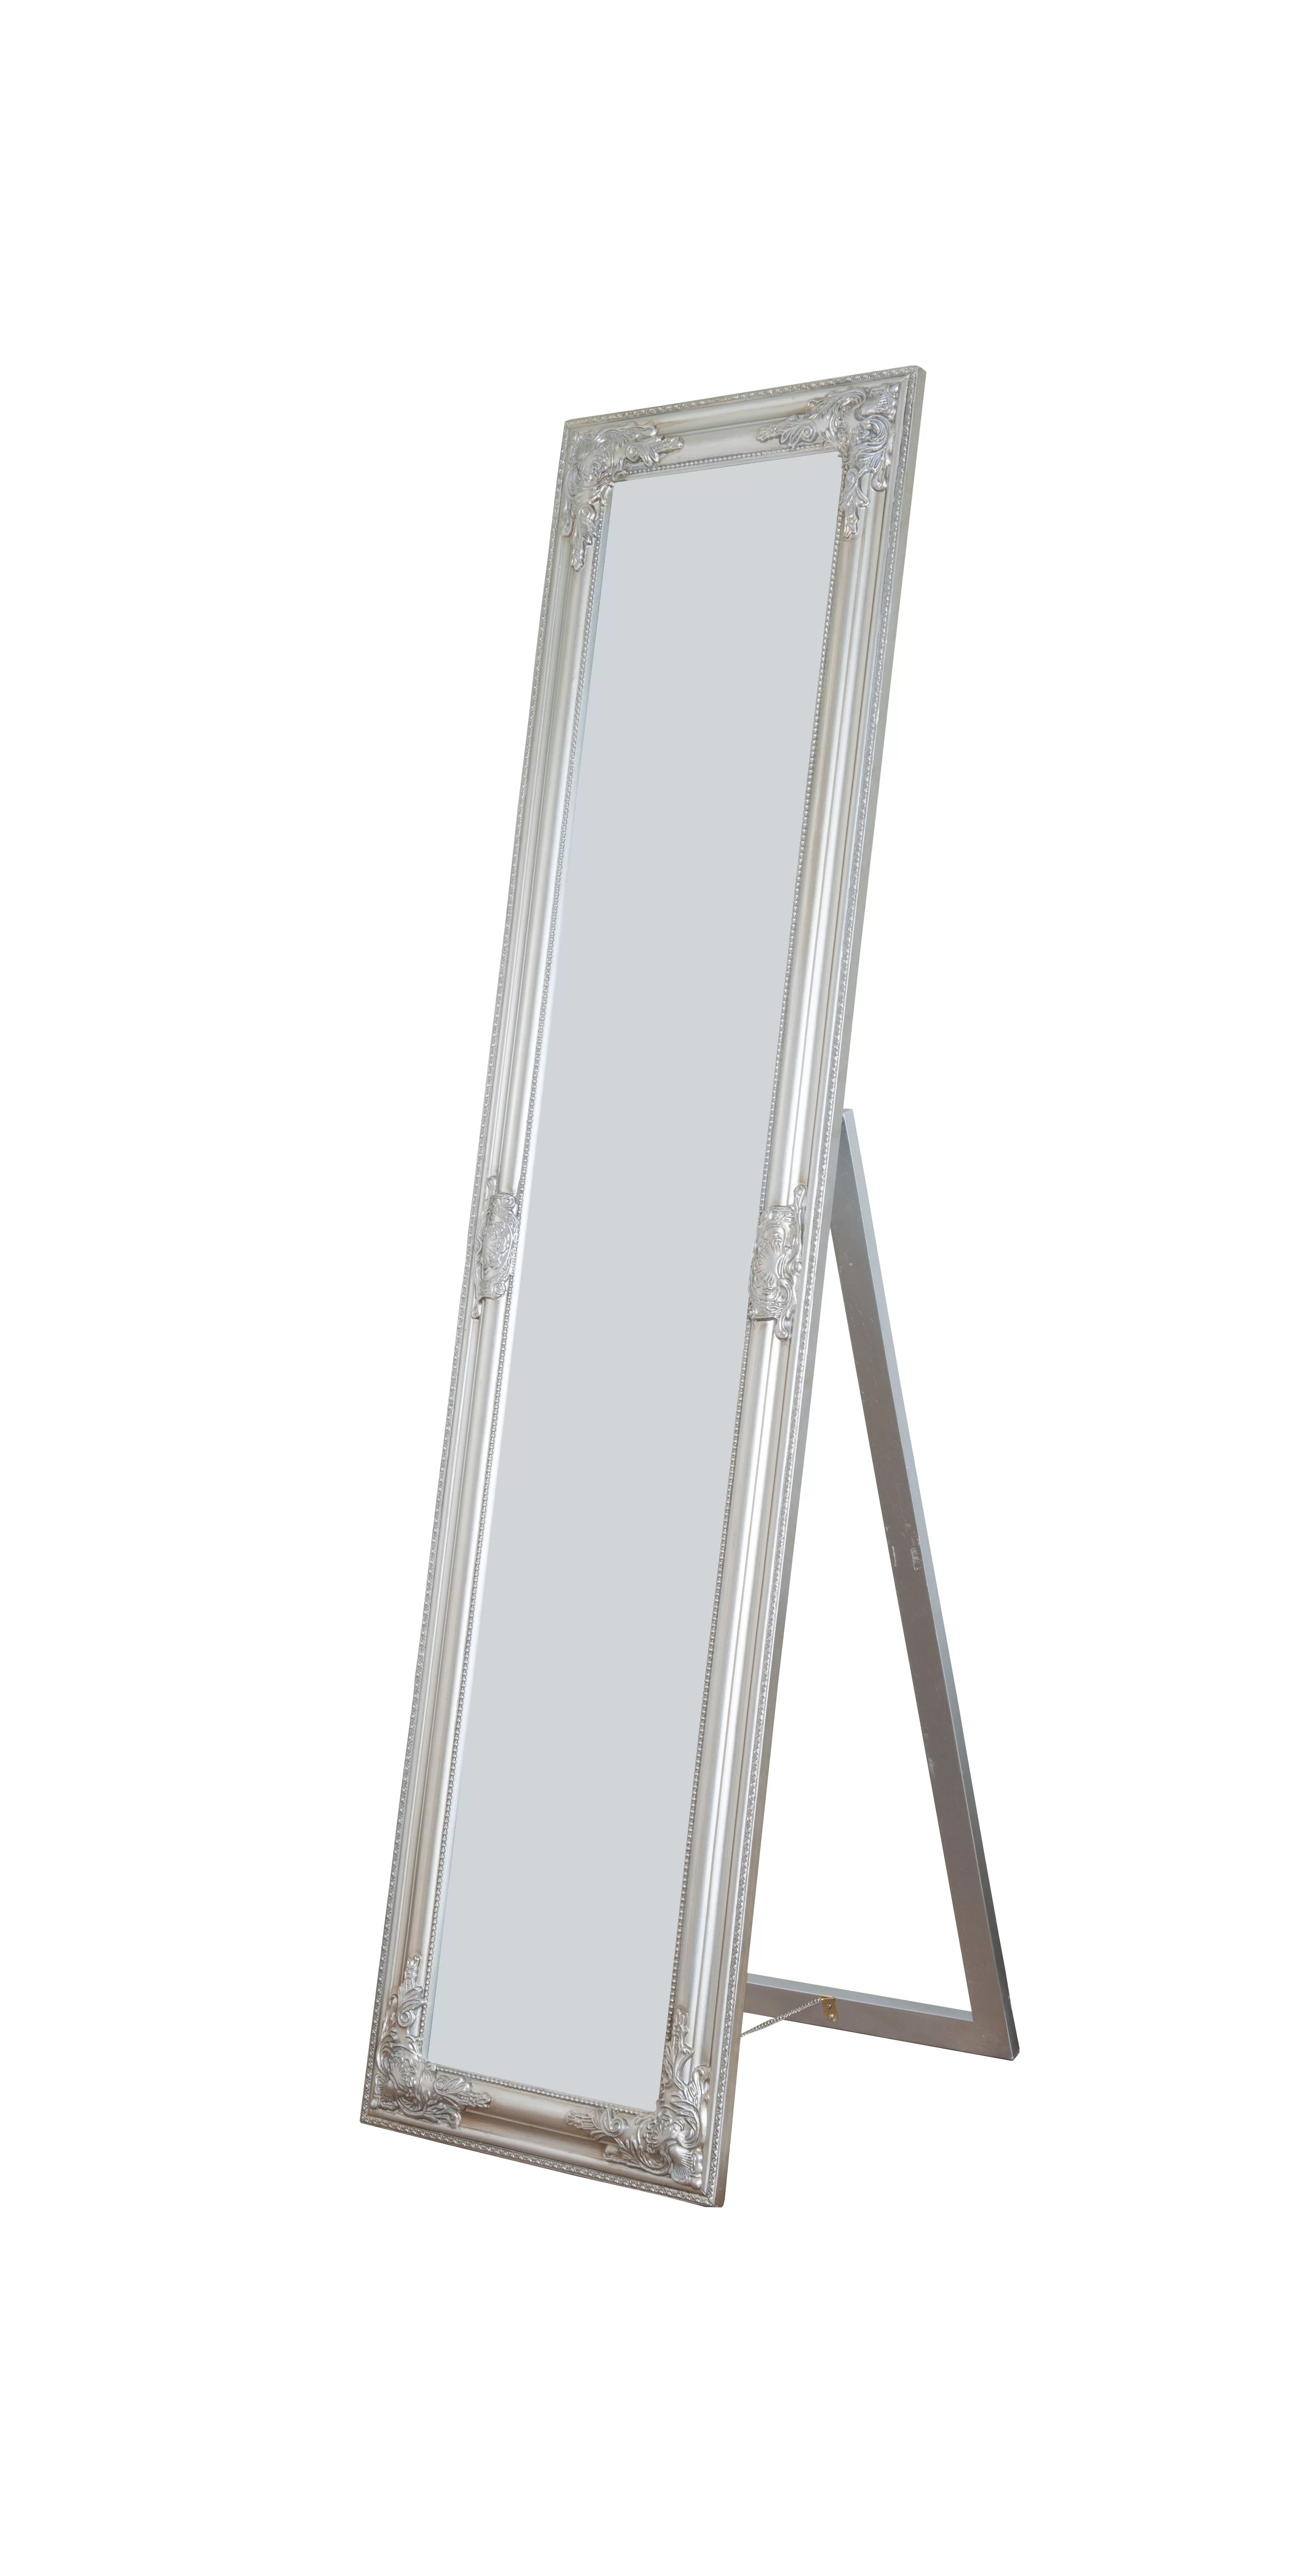 Standing Mirror Rectangle Cheval Standing Wall Mirror